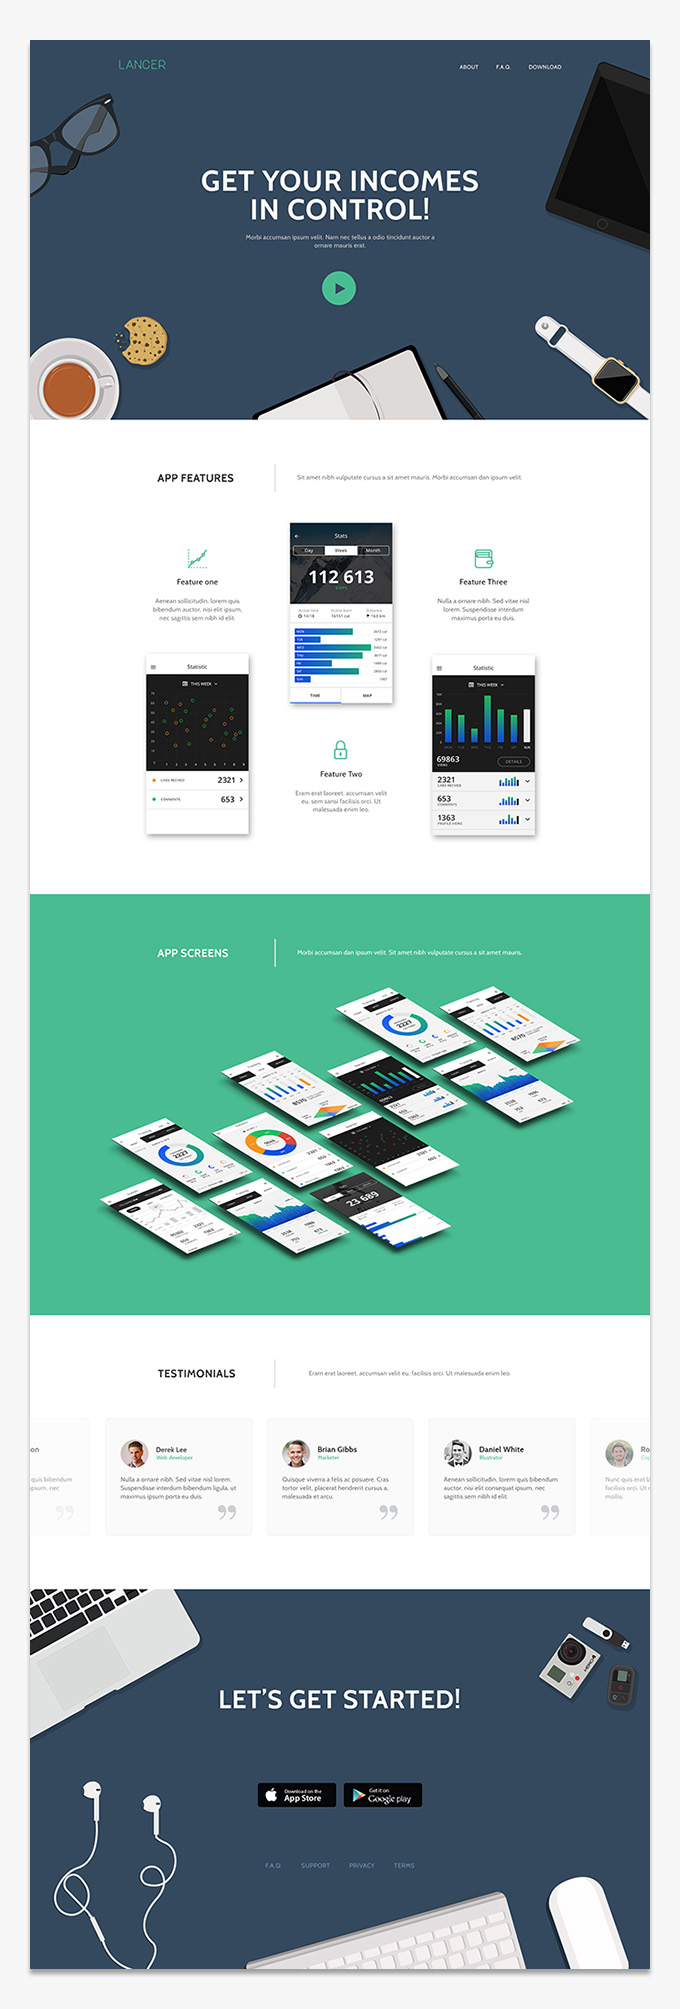 Lancer - Mobile app landing page PSD template preview